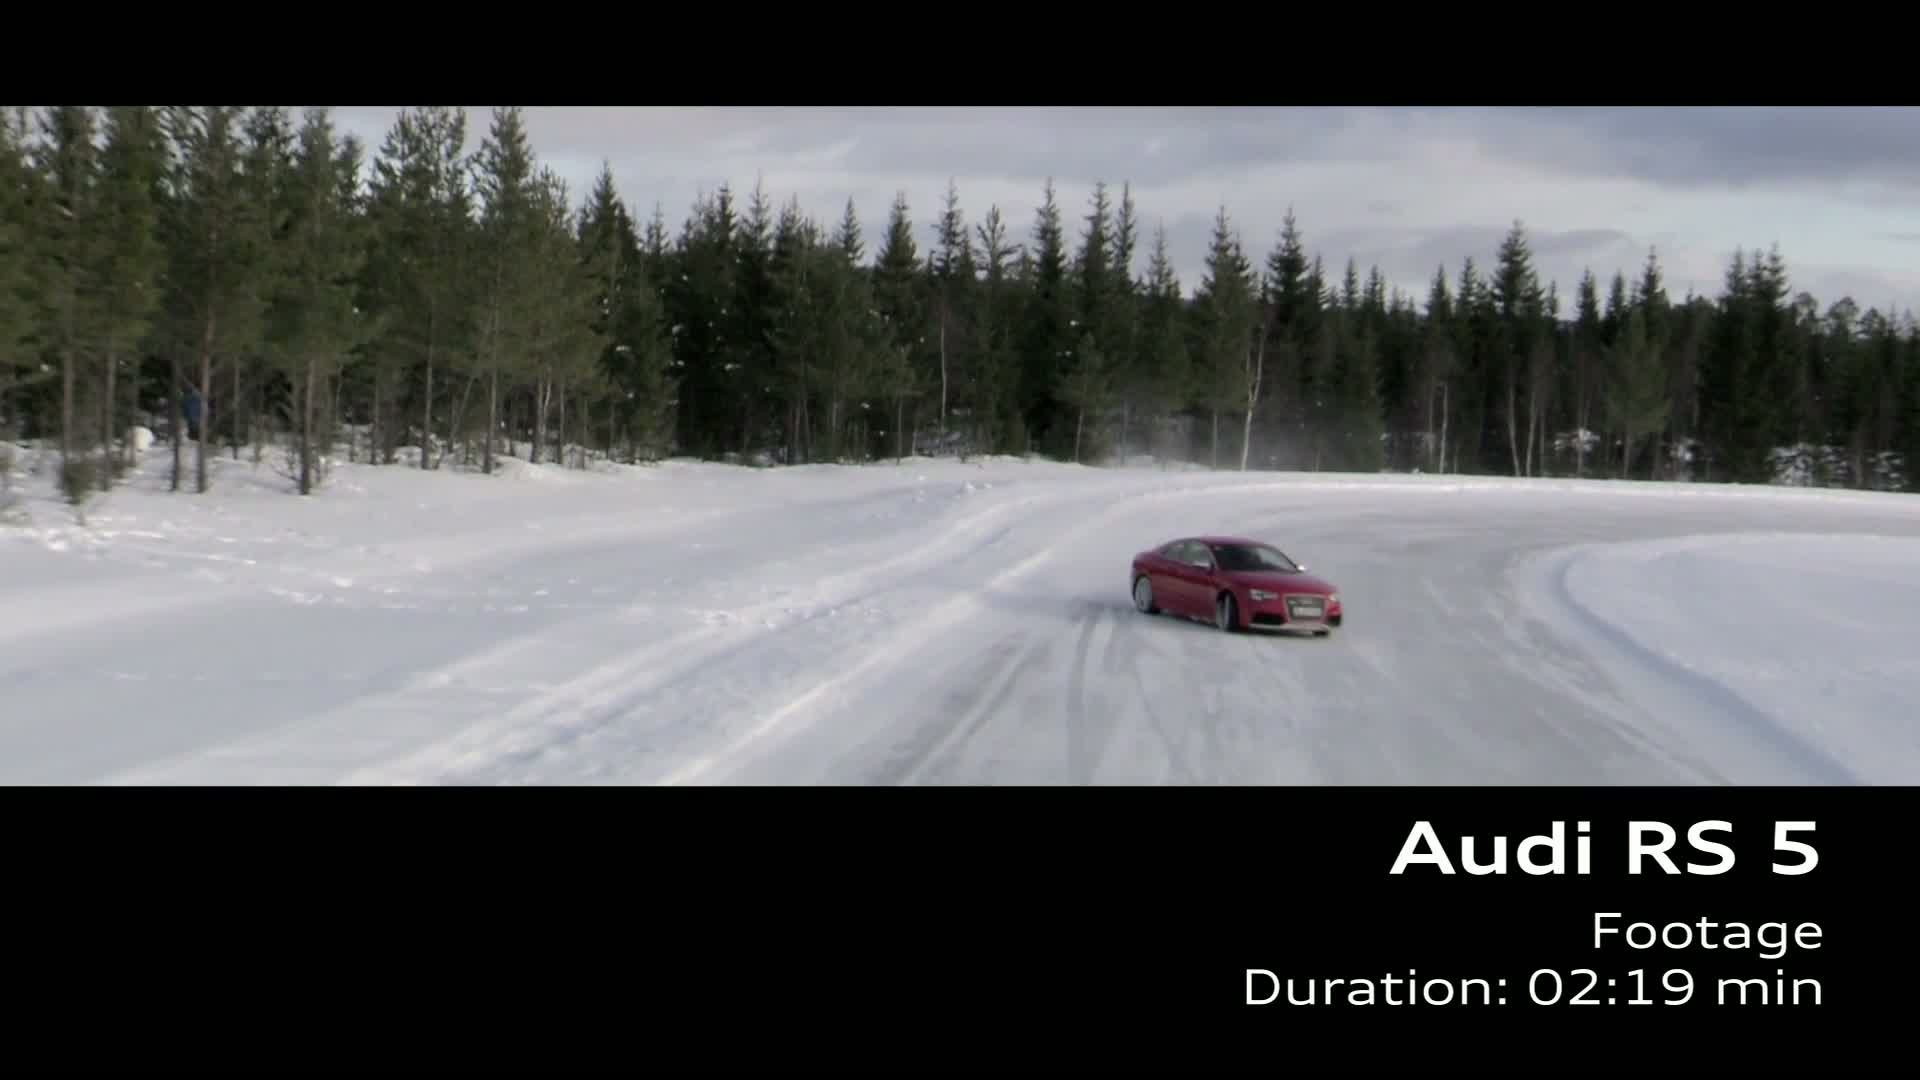 The Audi RS 5 - Footage Sweden